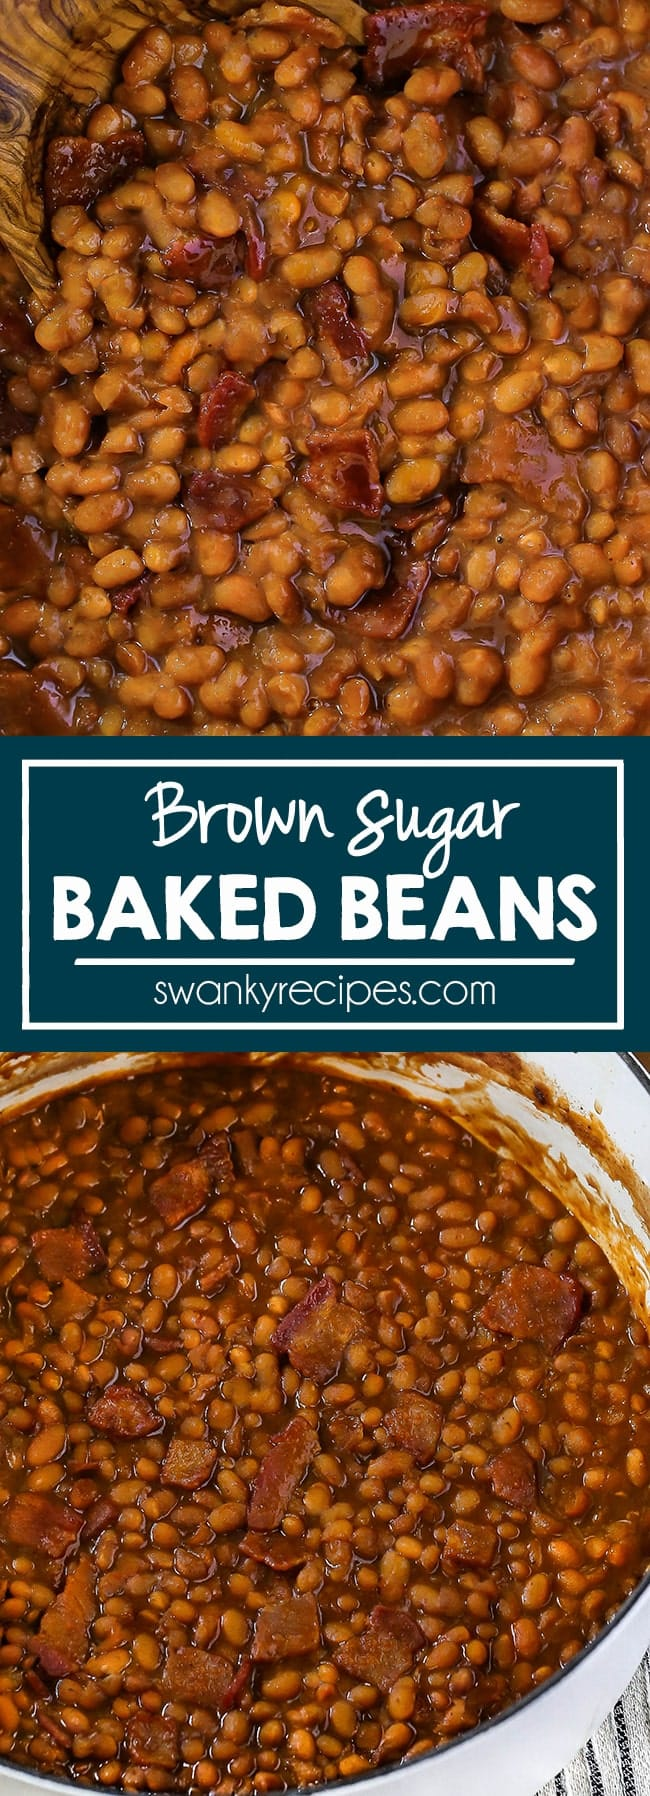 Close picture of baked beans in a thick brown sugar sauce with pieces of bacon scooped up with a wooden serving spoon. Another image of baked beans in a white dutch oven with pieces of bacon.